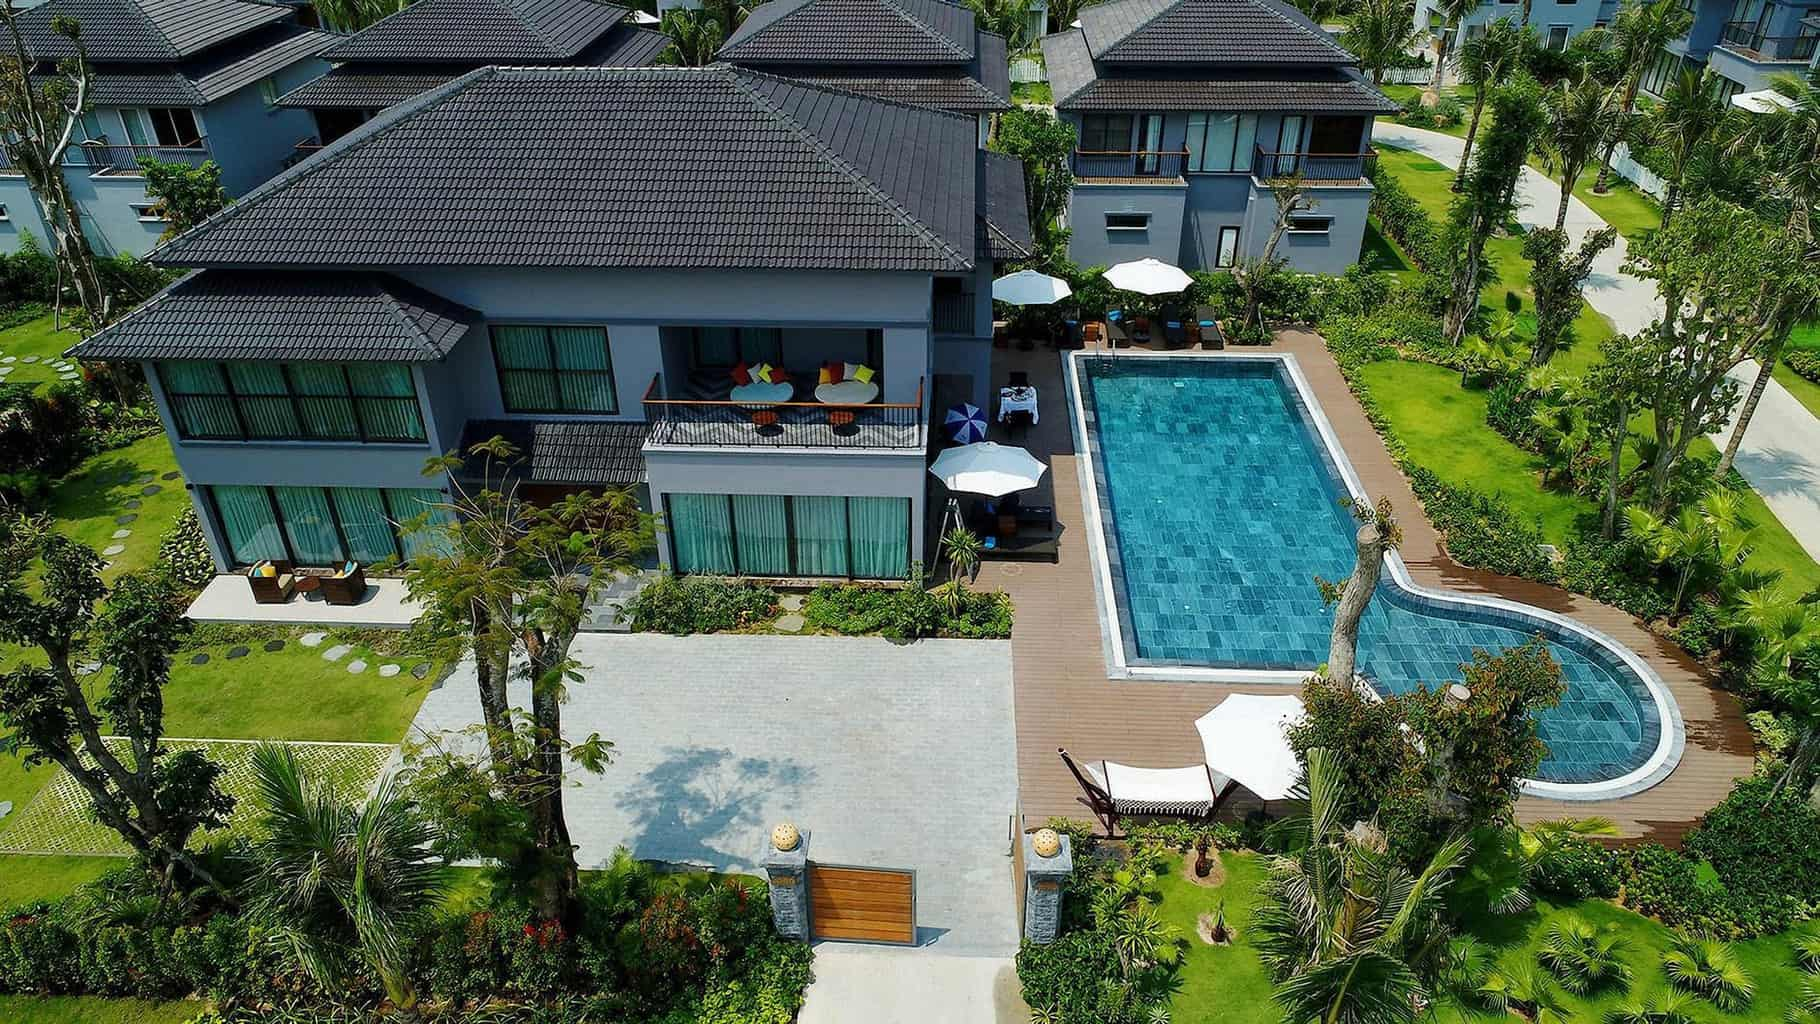 bird s eye view of a house with swimming pool